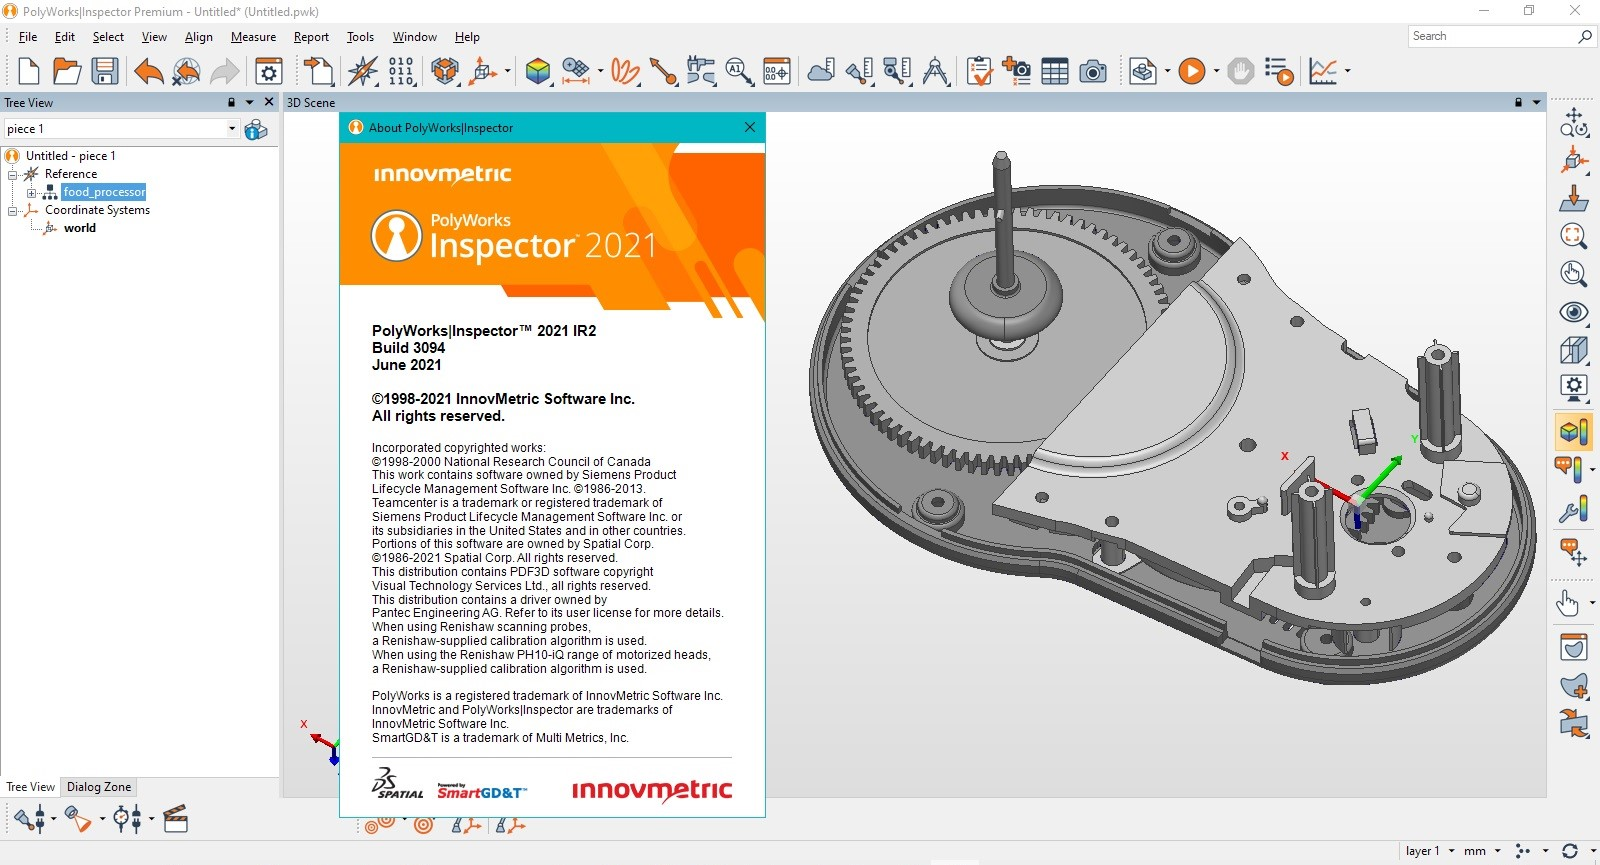 Working with InnovMetric PolyWorks Metrology Suite 2021 IR2 Win64 full